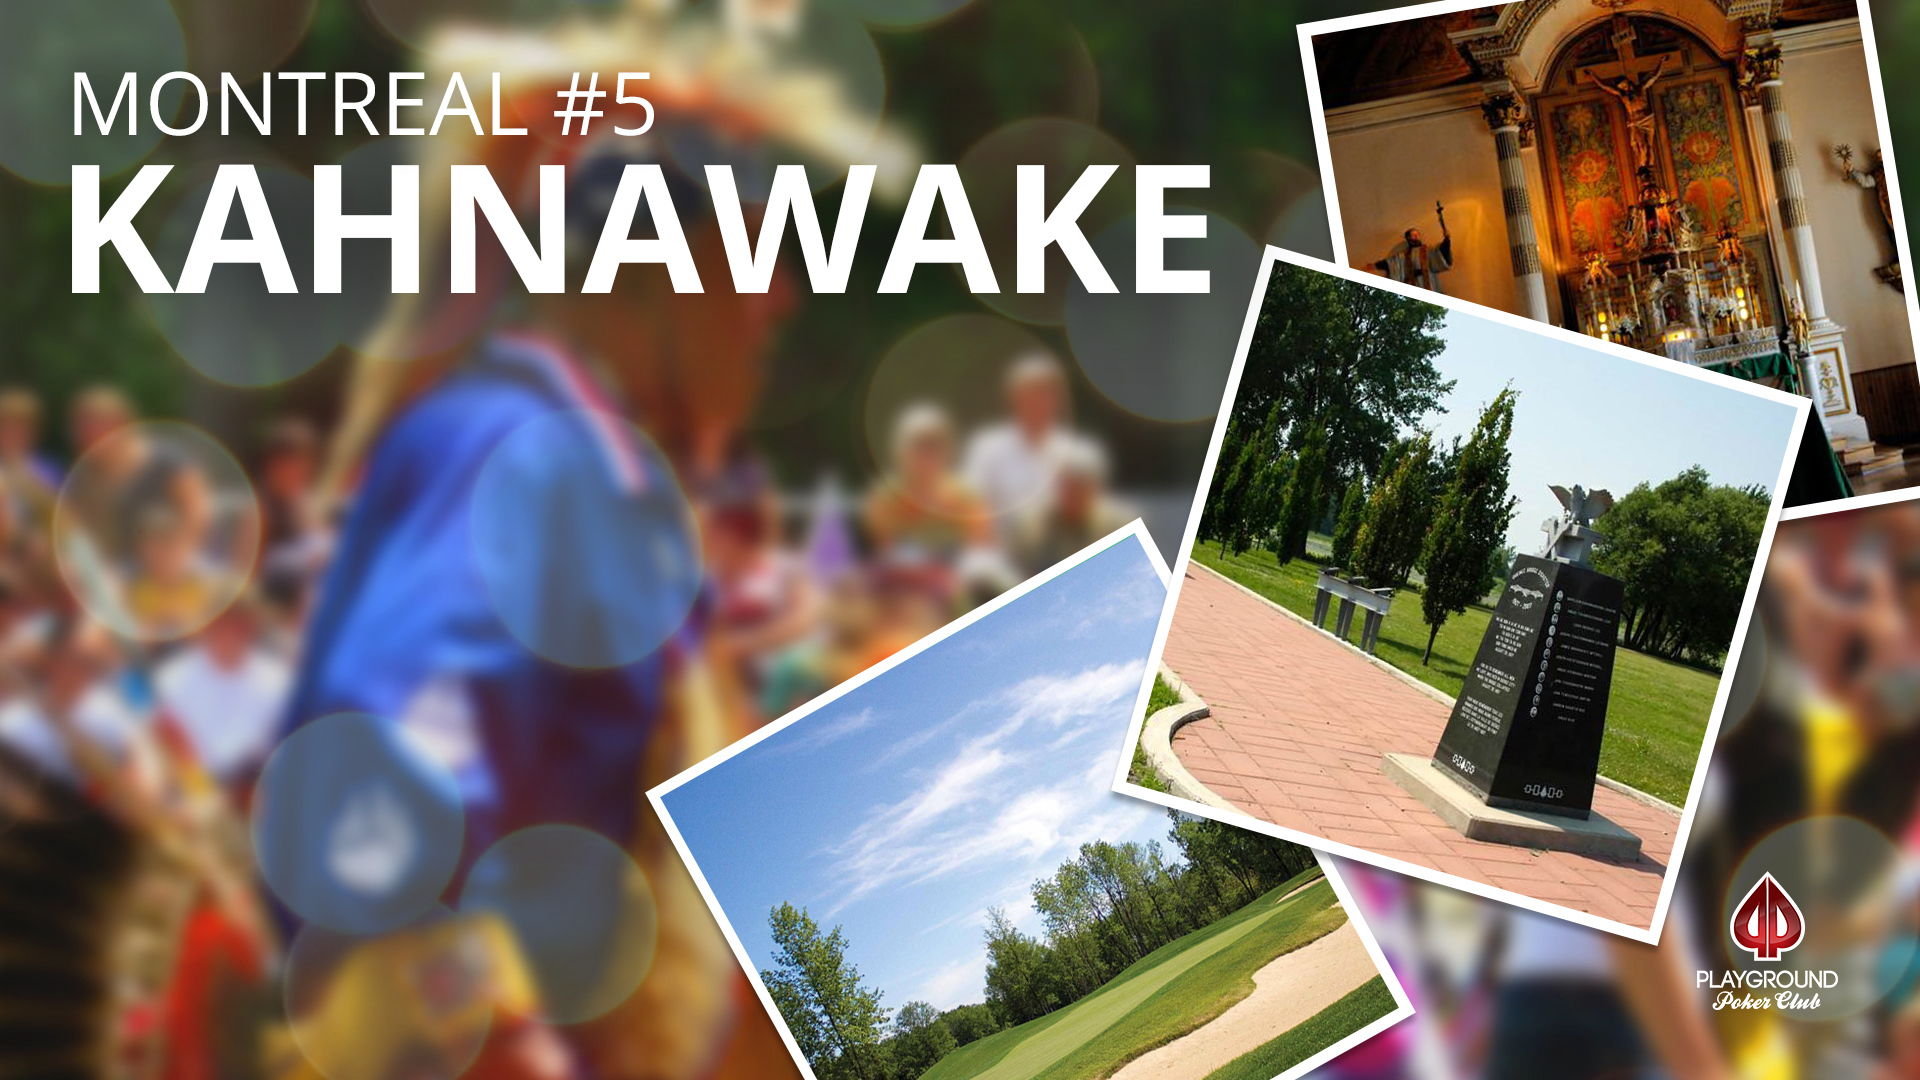 Number 5 on our Top 10 – Kahnawake